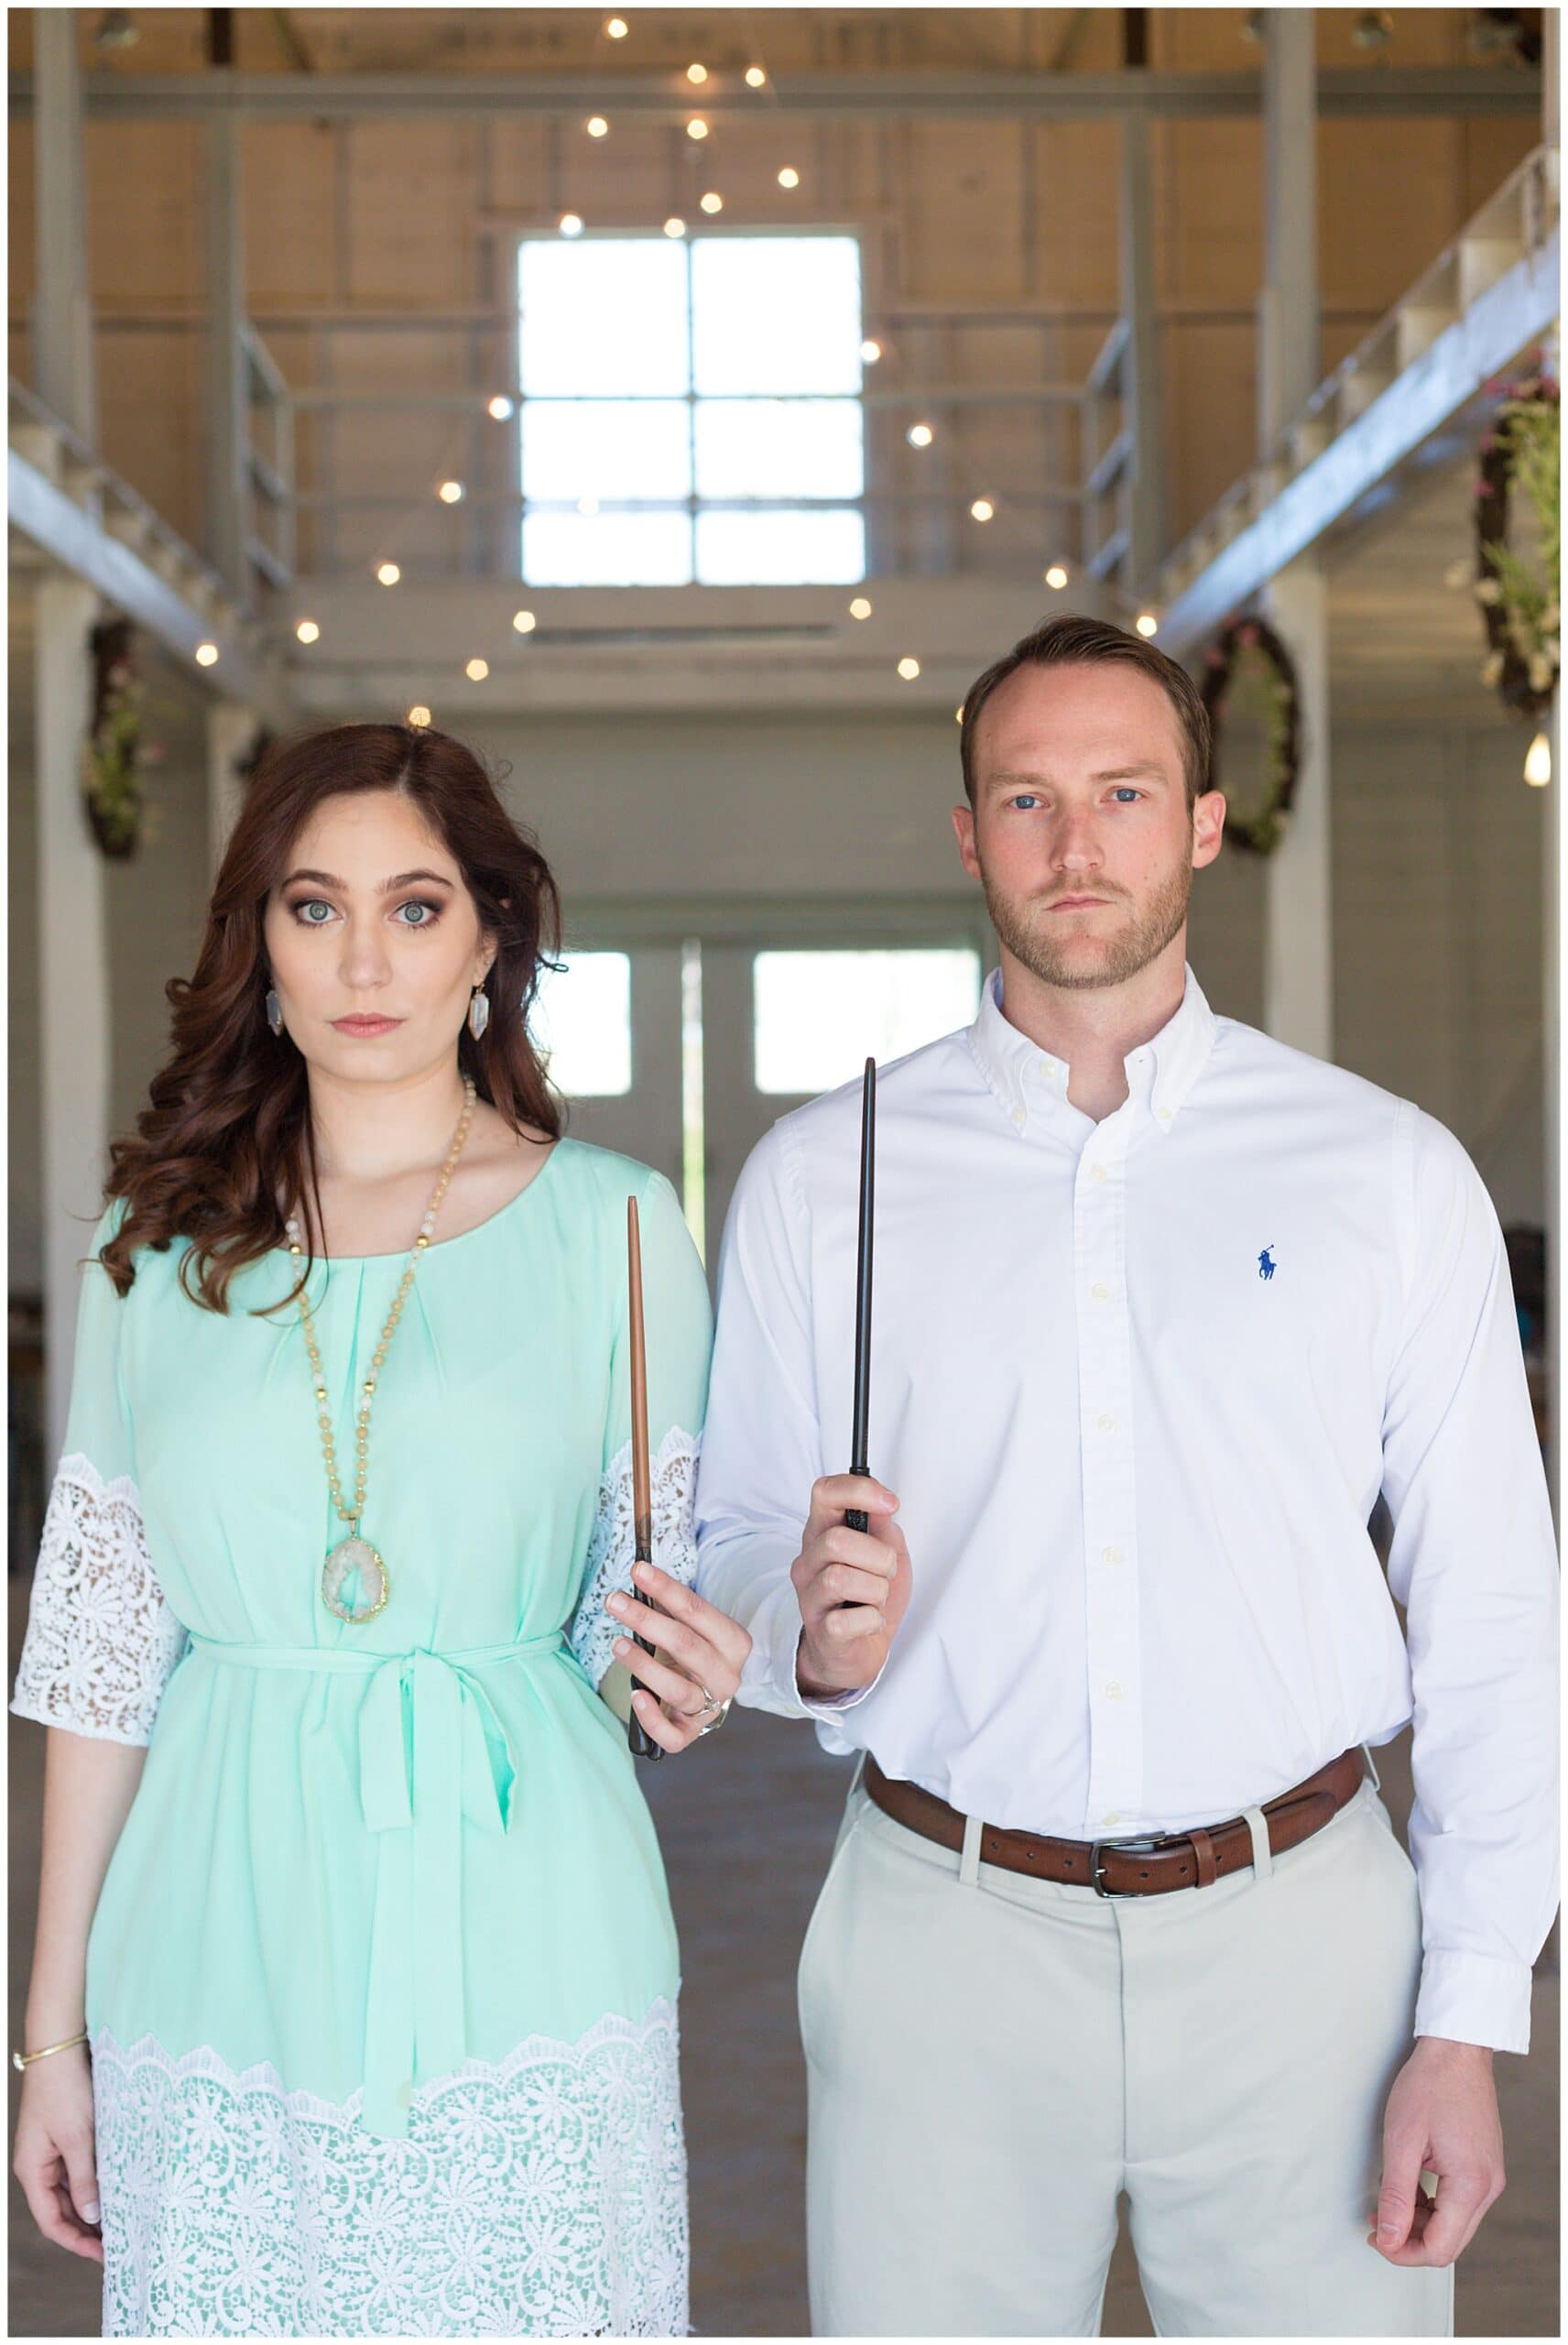 Harry Potter Styled Engagement Session | Swish and Click Photography